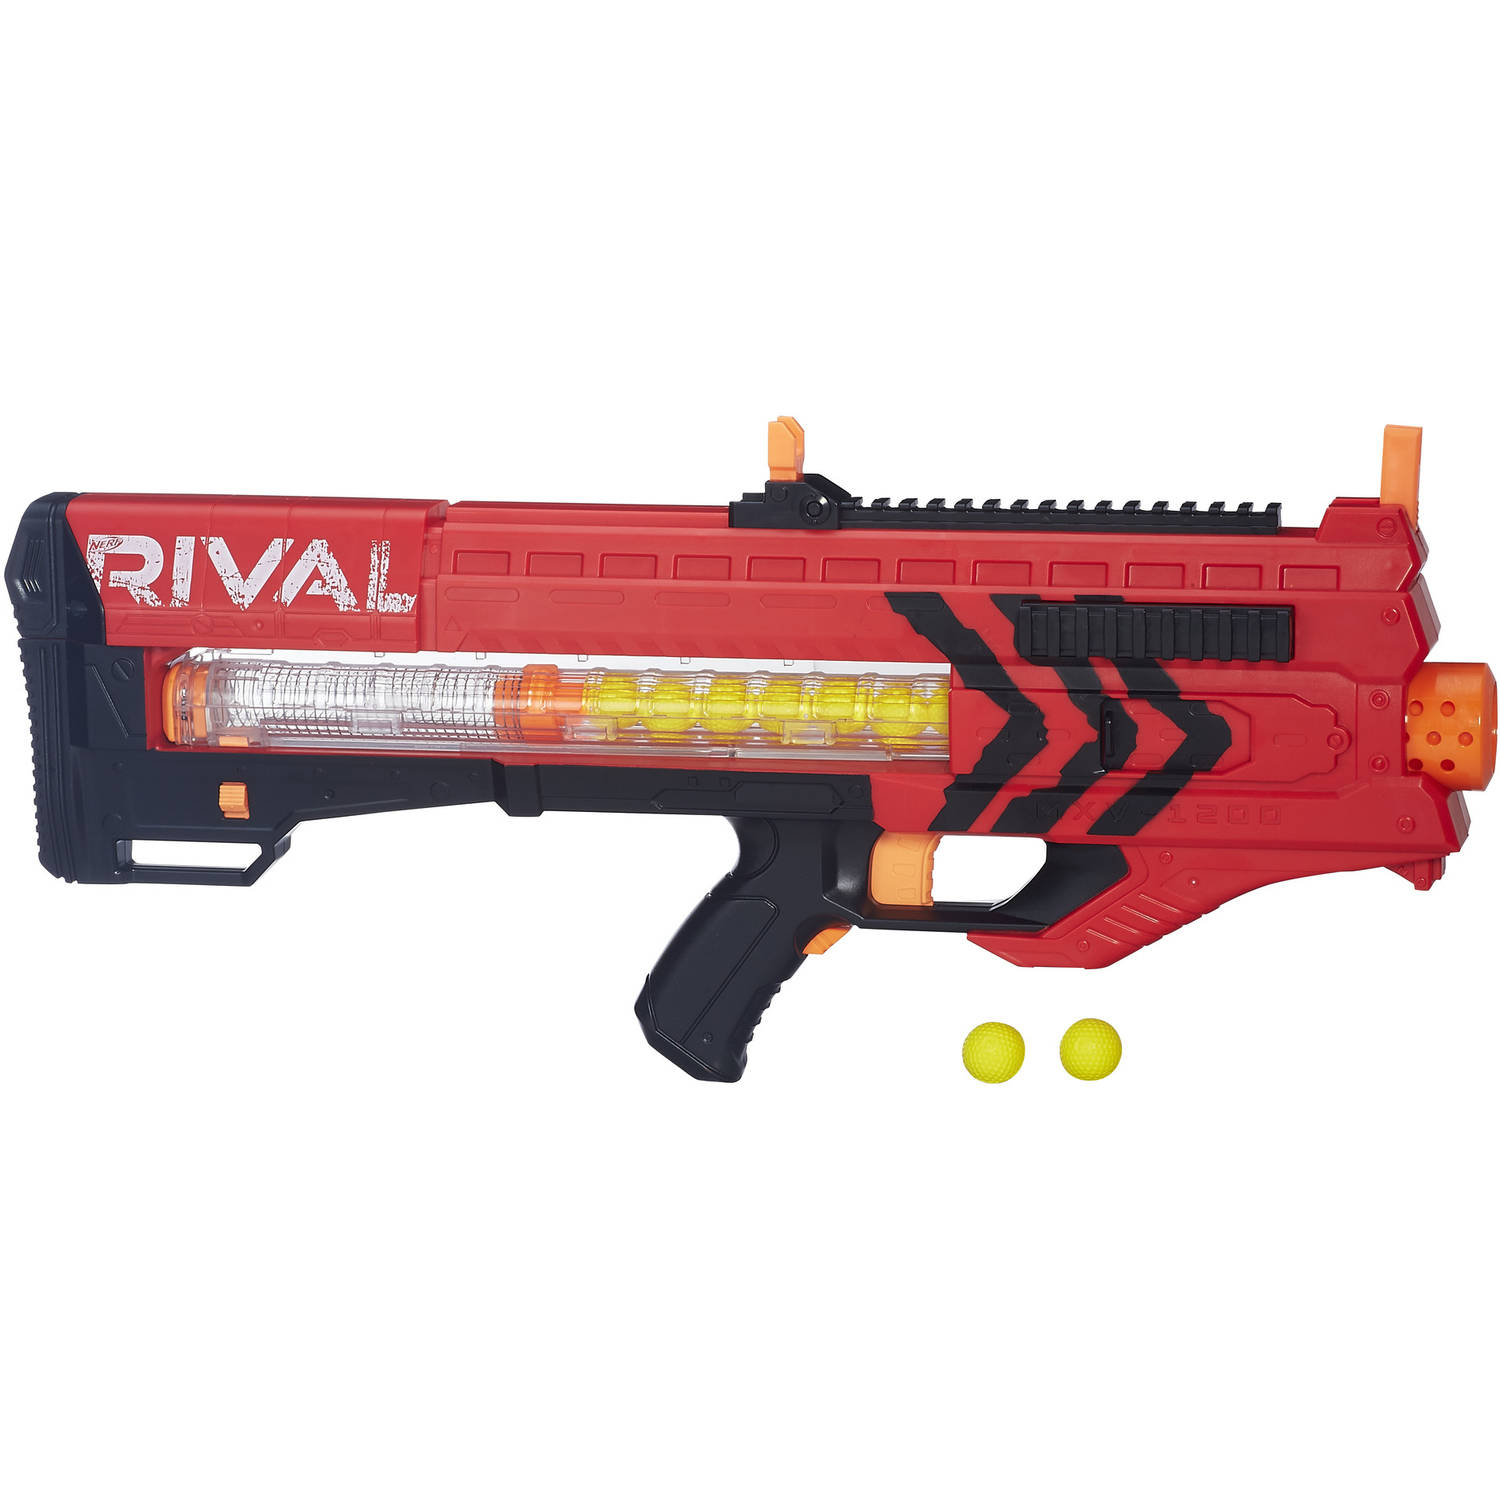 Nerf Rival Zeus MXV-1200 Blaster (Red) by Hasbro